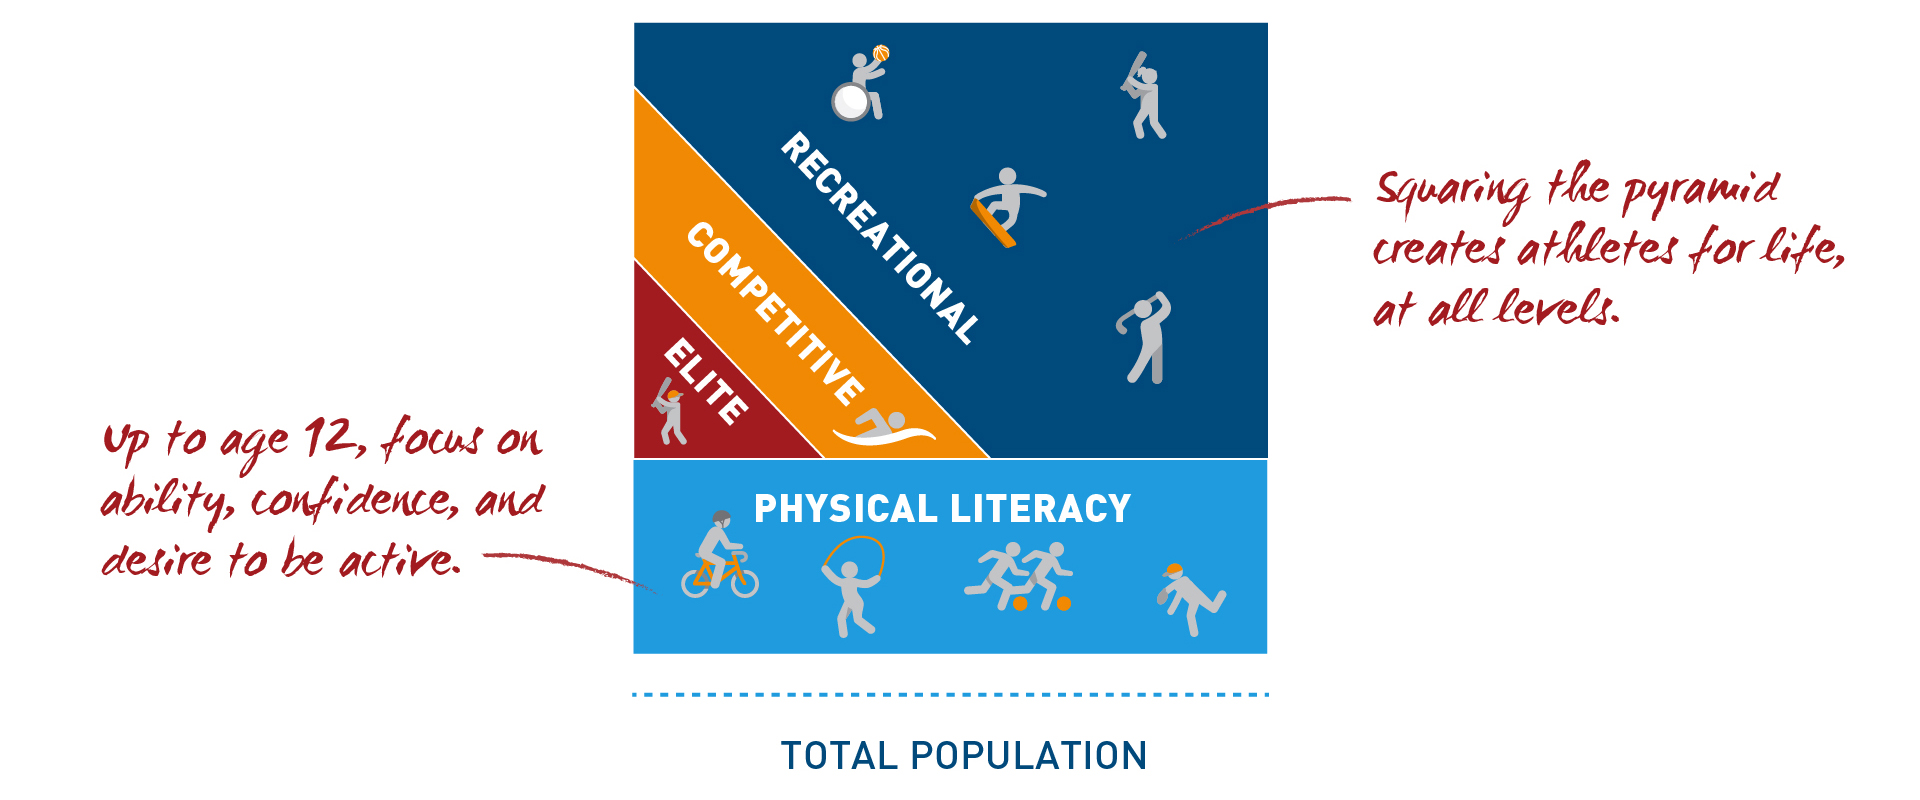 Fig. 5 A square sports model allows for maximum inclusion, provides opportunity for people of all skill and capability levels, and creates individuals who are active for life. (Courtesy of Aspen Institute Project Play)    [Citation]